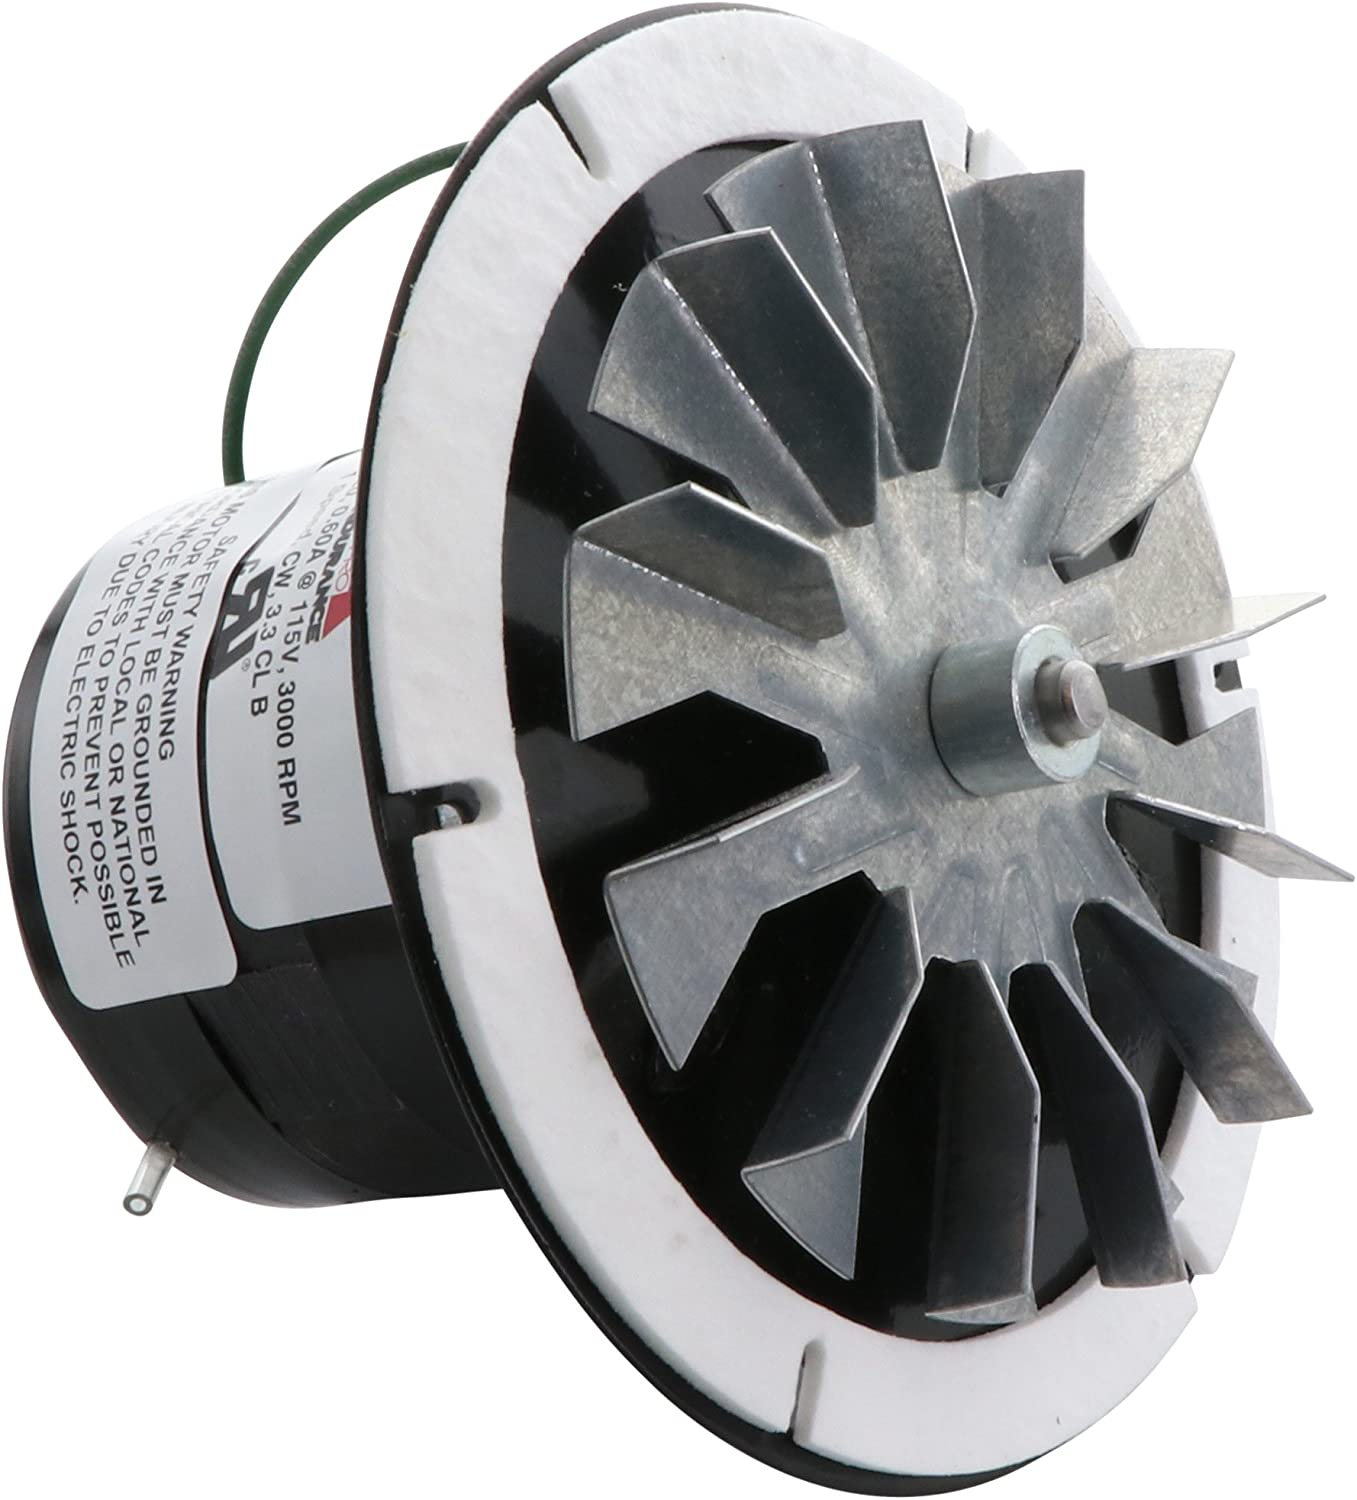 Rotom HB-RBM120 Pellet Stove Blower Motor Replacement 1/60 hp, 3000 rpm, 0.3 Amp., 115V